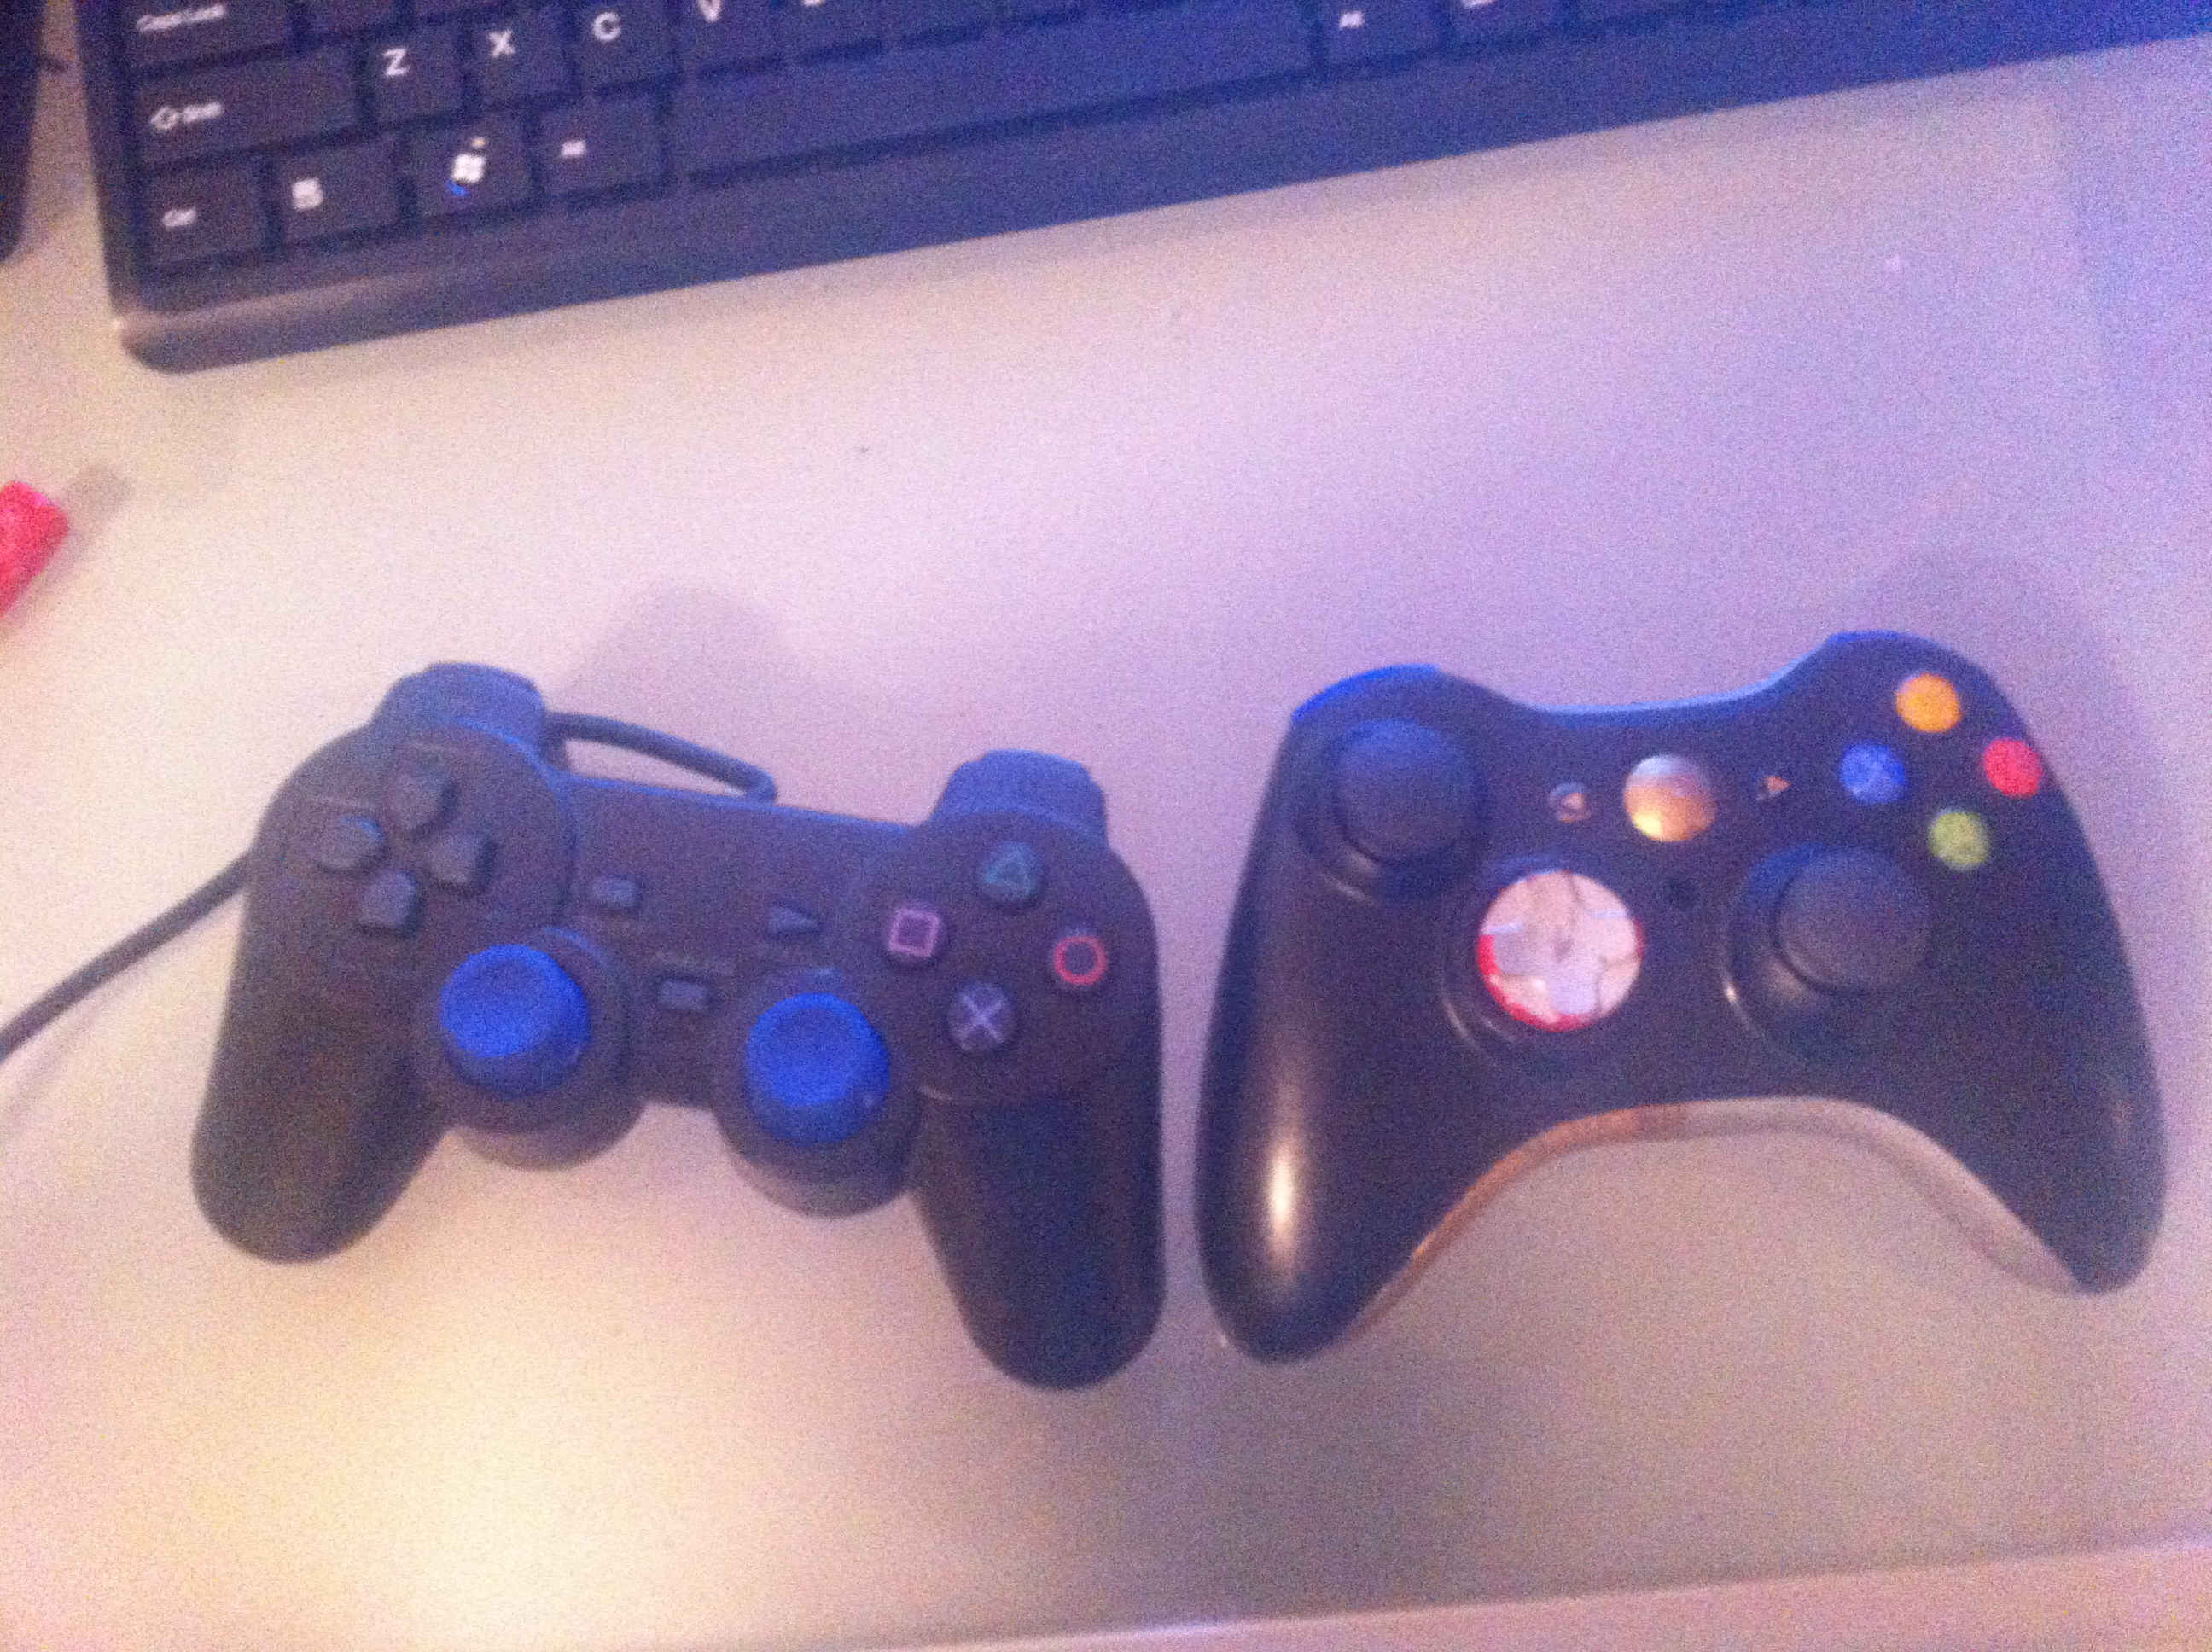 How to Add/Make Convex Joysticks for Your Xbox 360